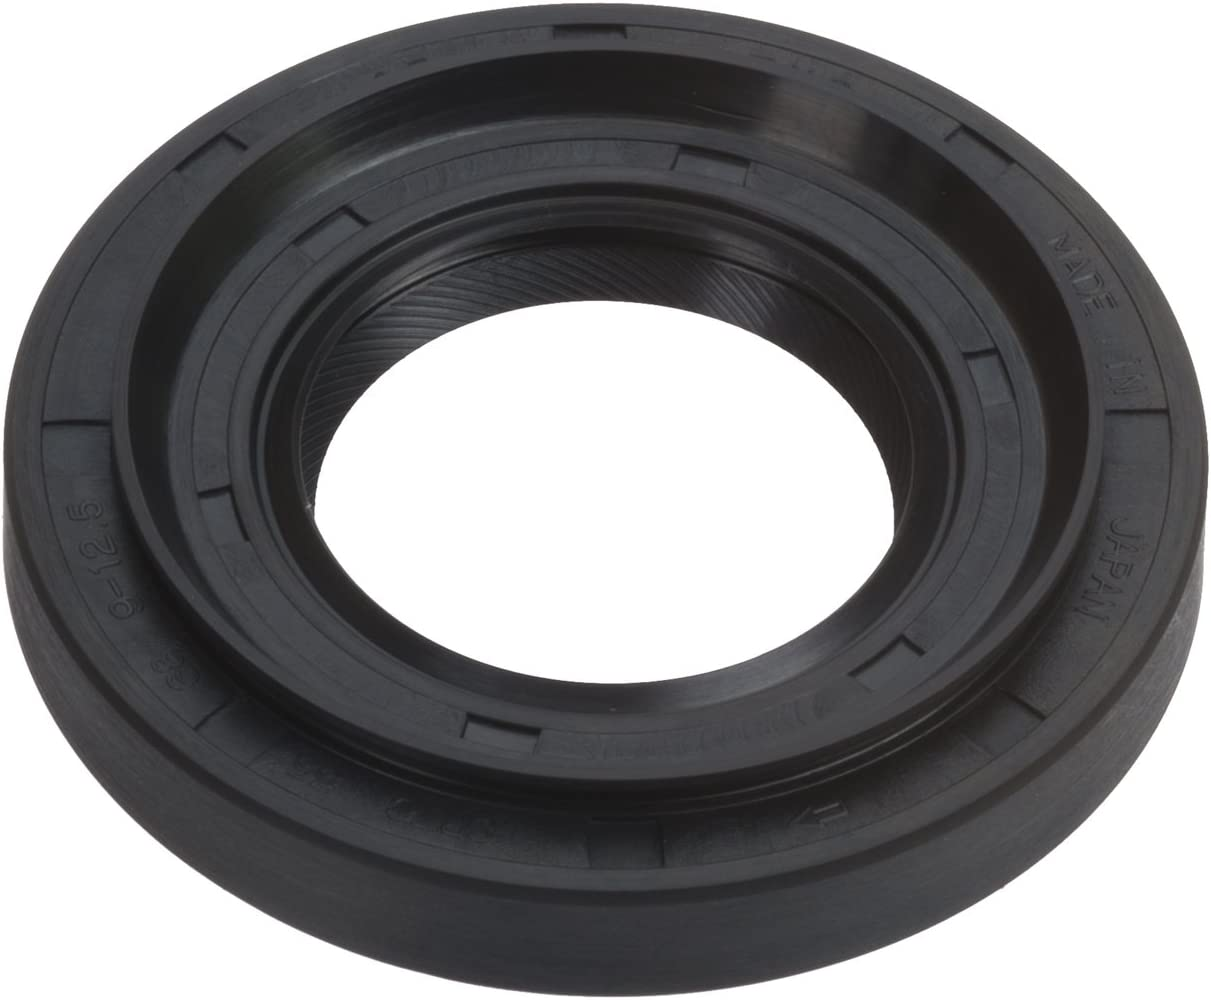 National 223580 Super beauty product restock quality top! Max 64% OFF Oil Seal